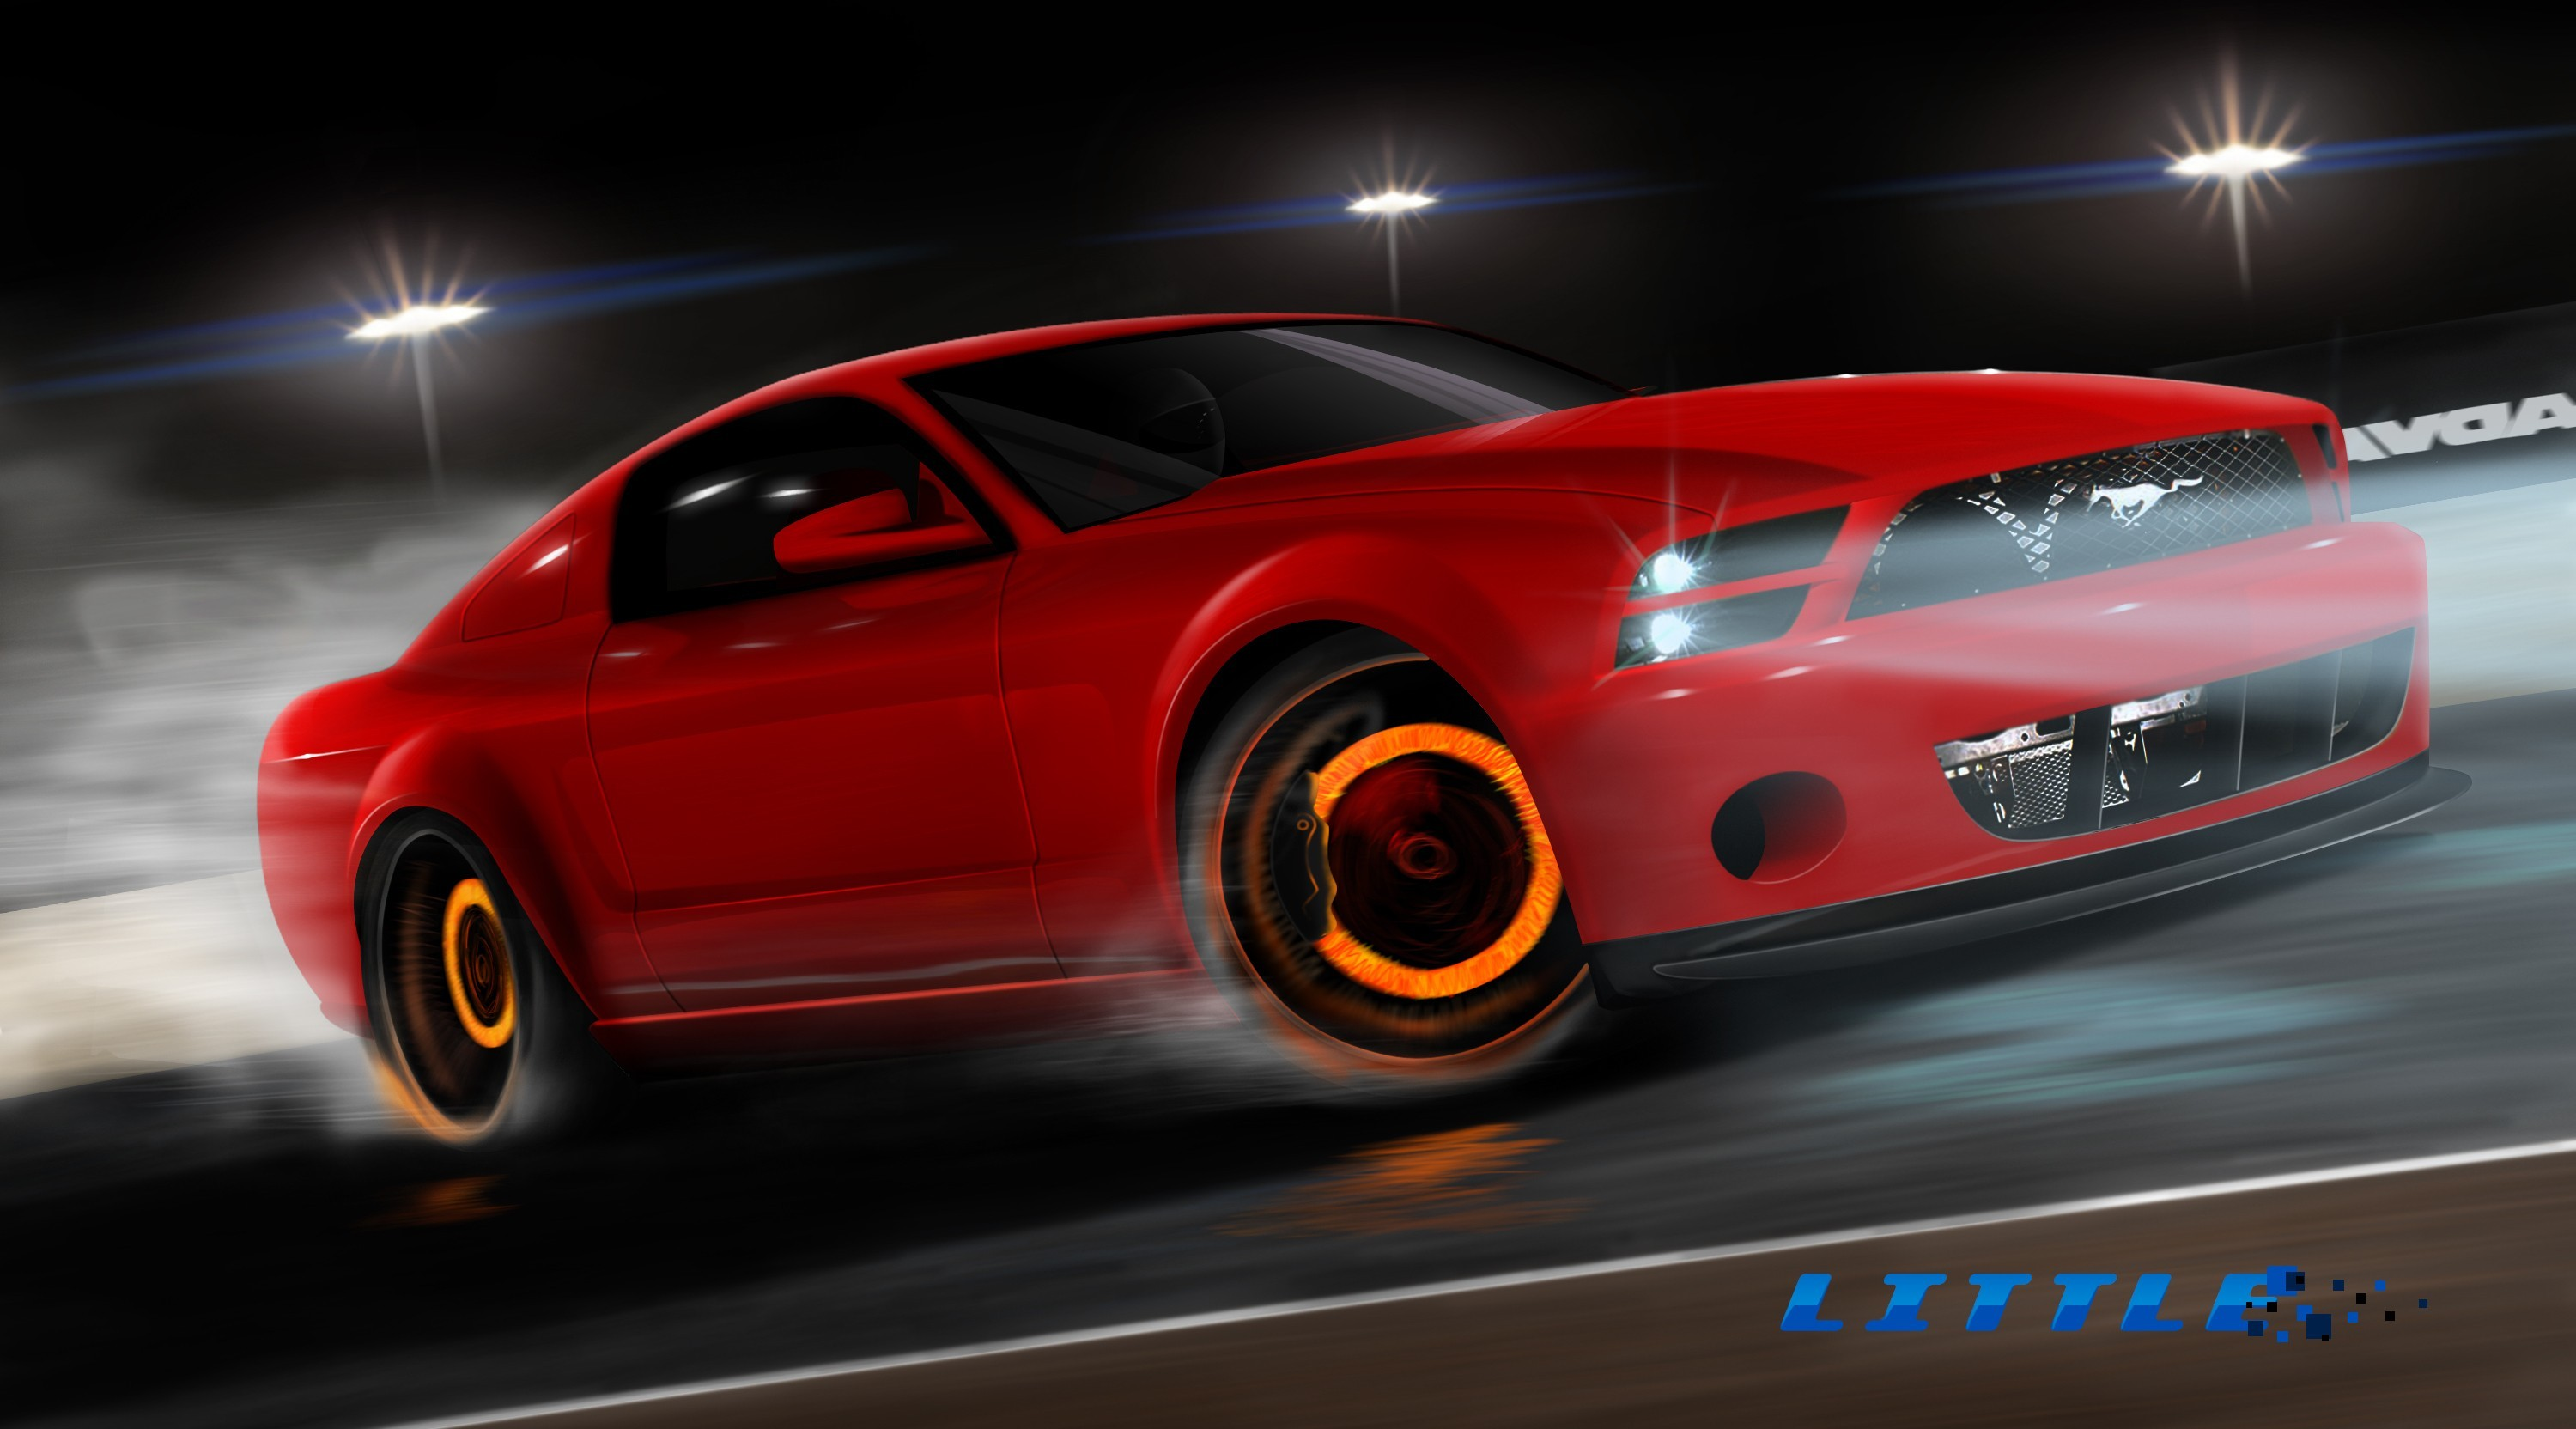 Ford Mustang Shelby Gt American Car Muscle 50 Wallpaper